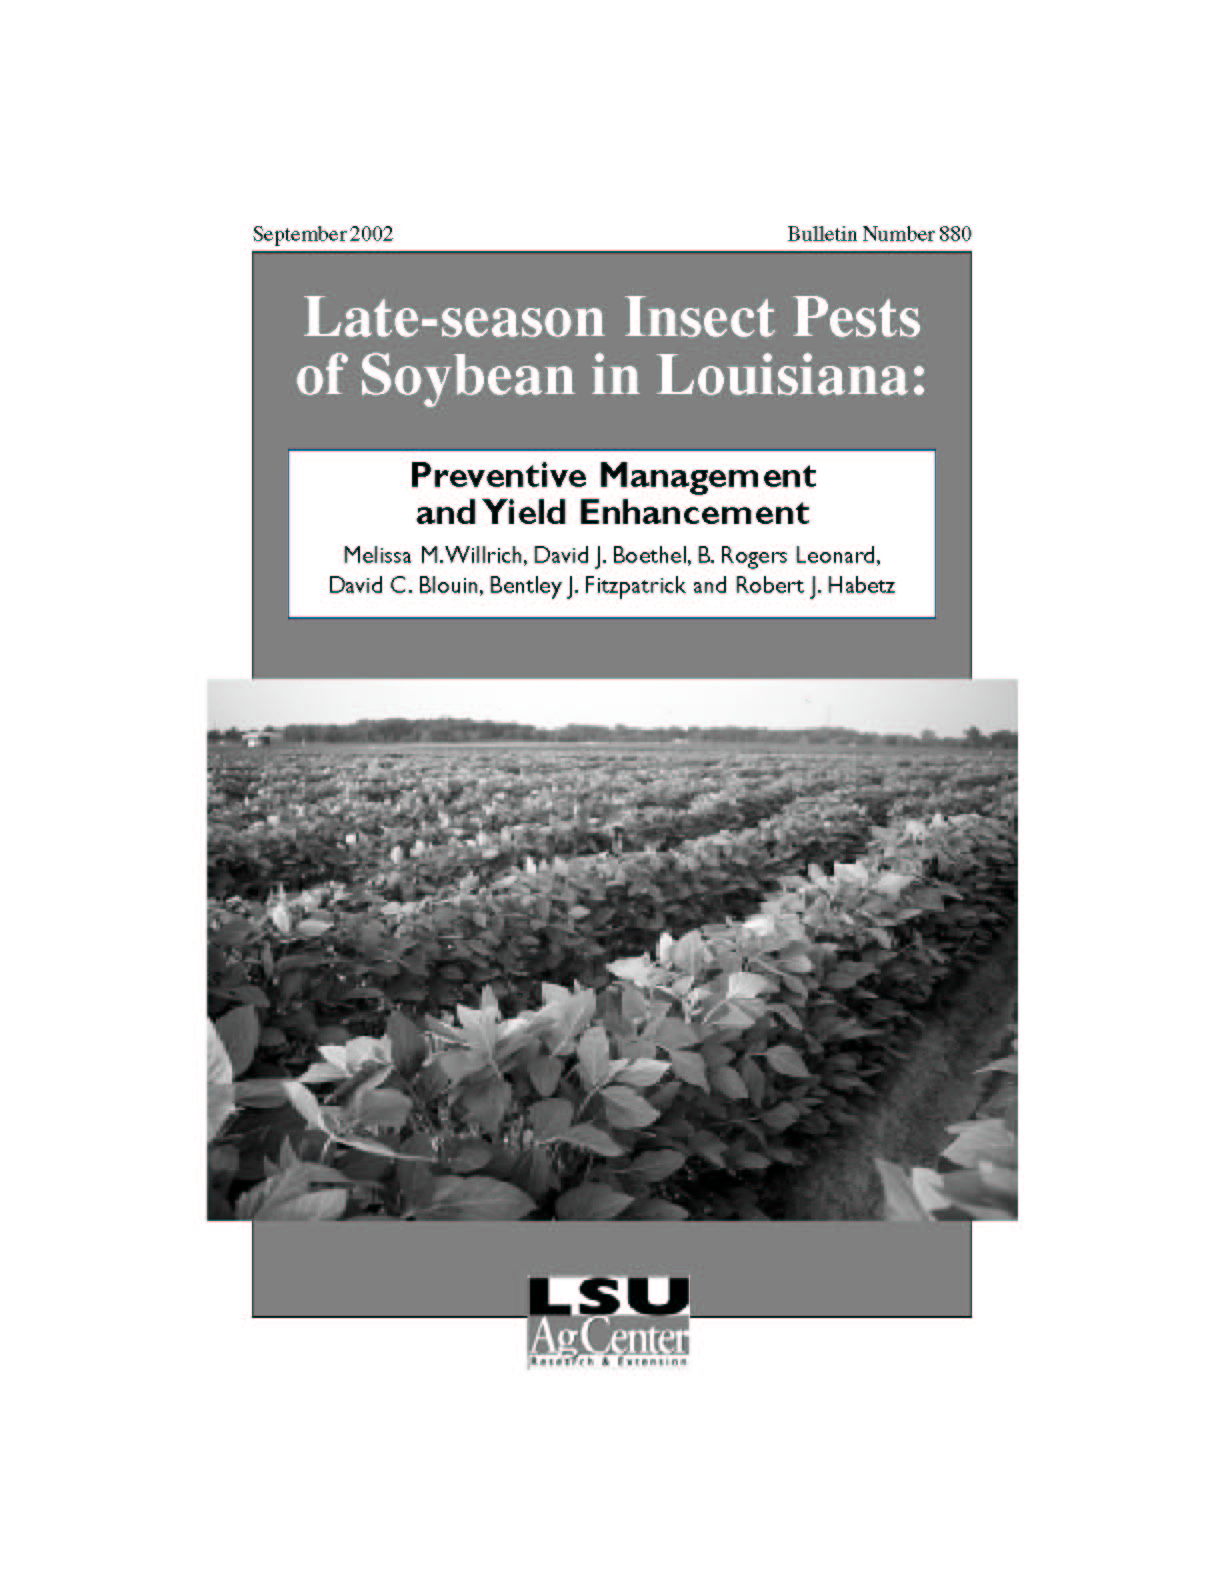 Late-season Insect Pests of Soybean in Louisiana: Preventive Management and Yield Enhancement (September 2002)